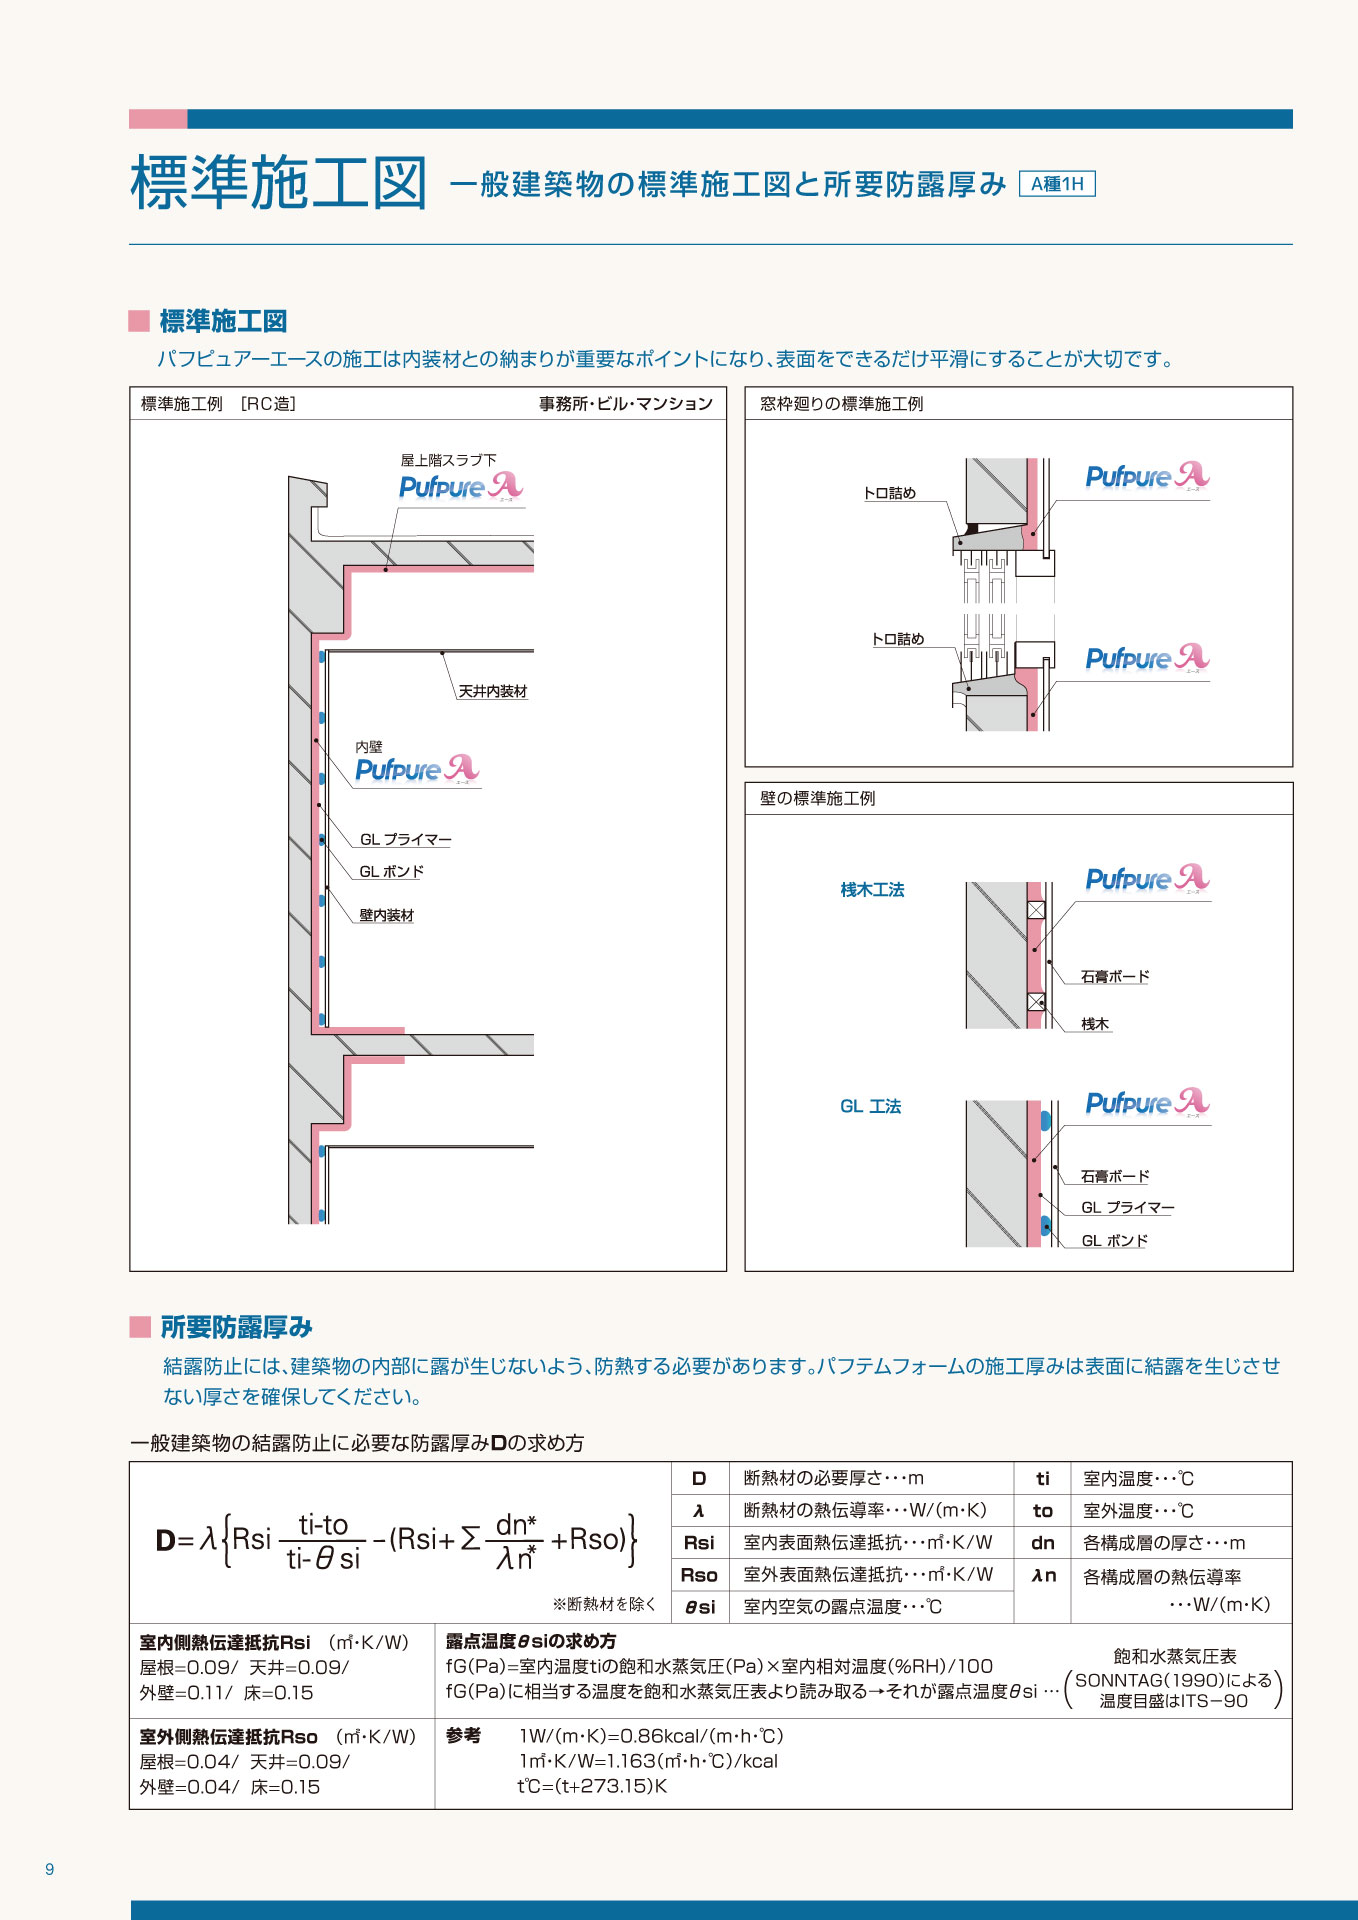 Thumbnail of http://建築物ノンフロン専用総合カタログP10